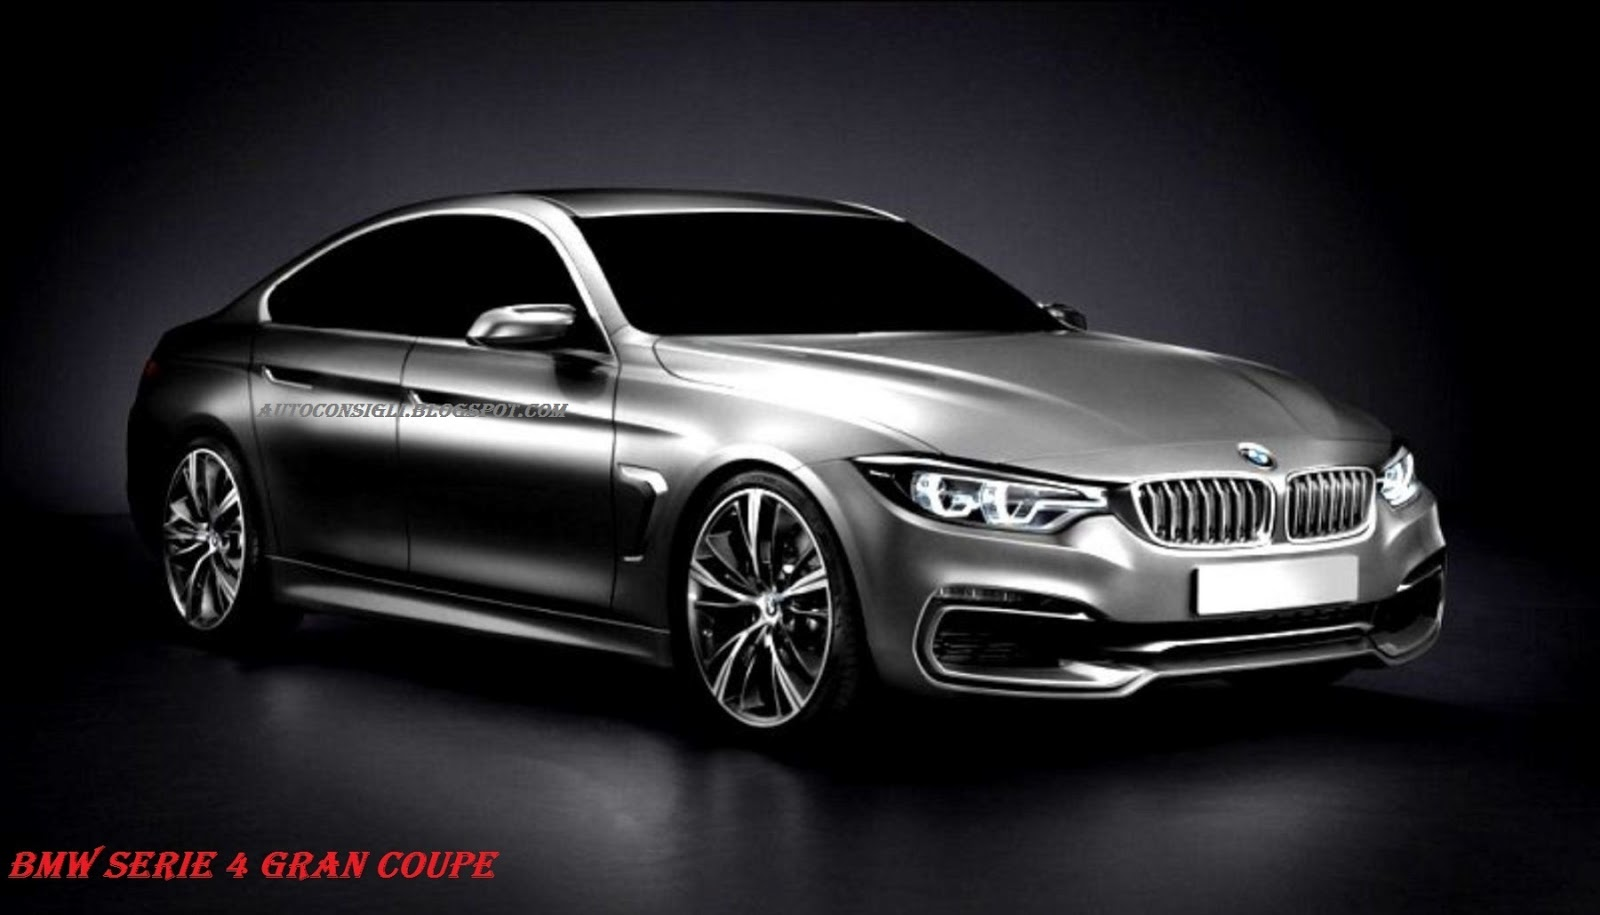 bmw 4 series gran coupe 4 series sedan rendered bmw 4. Black Bedroom Furniture Sets. Home Design Ideas